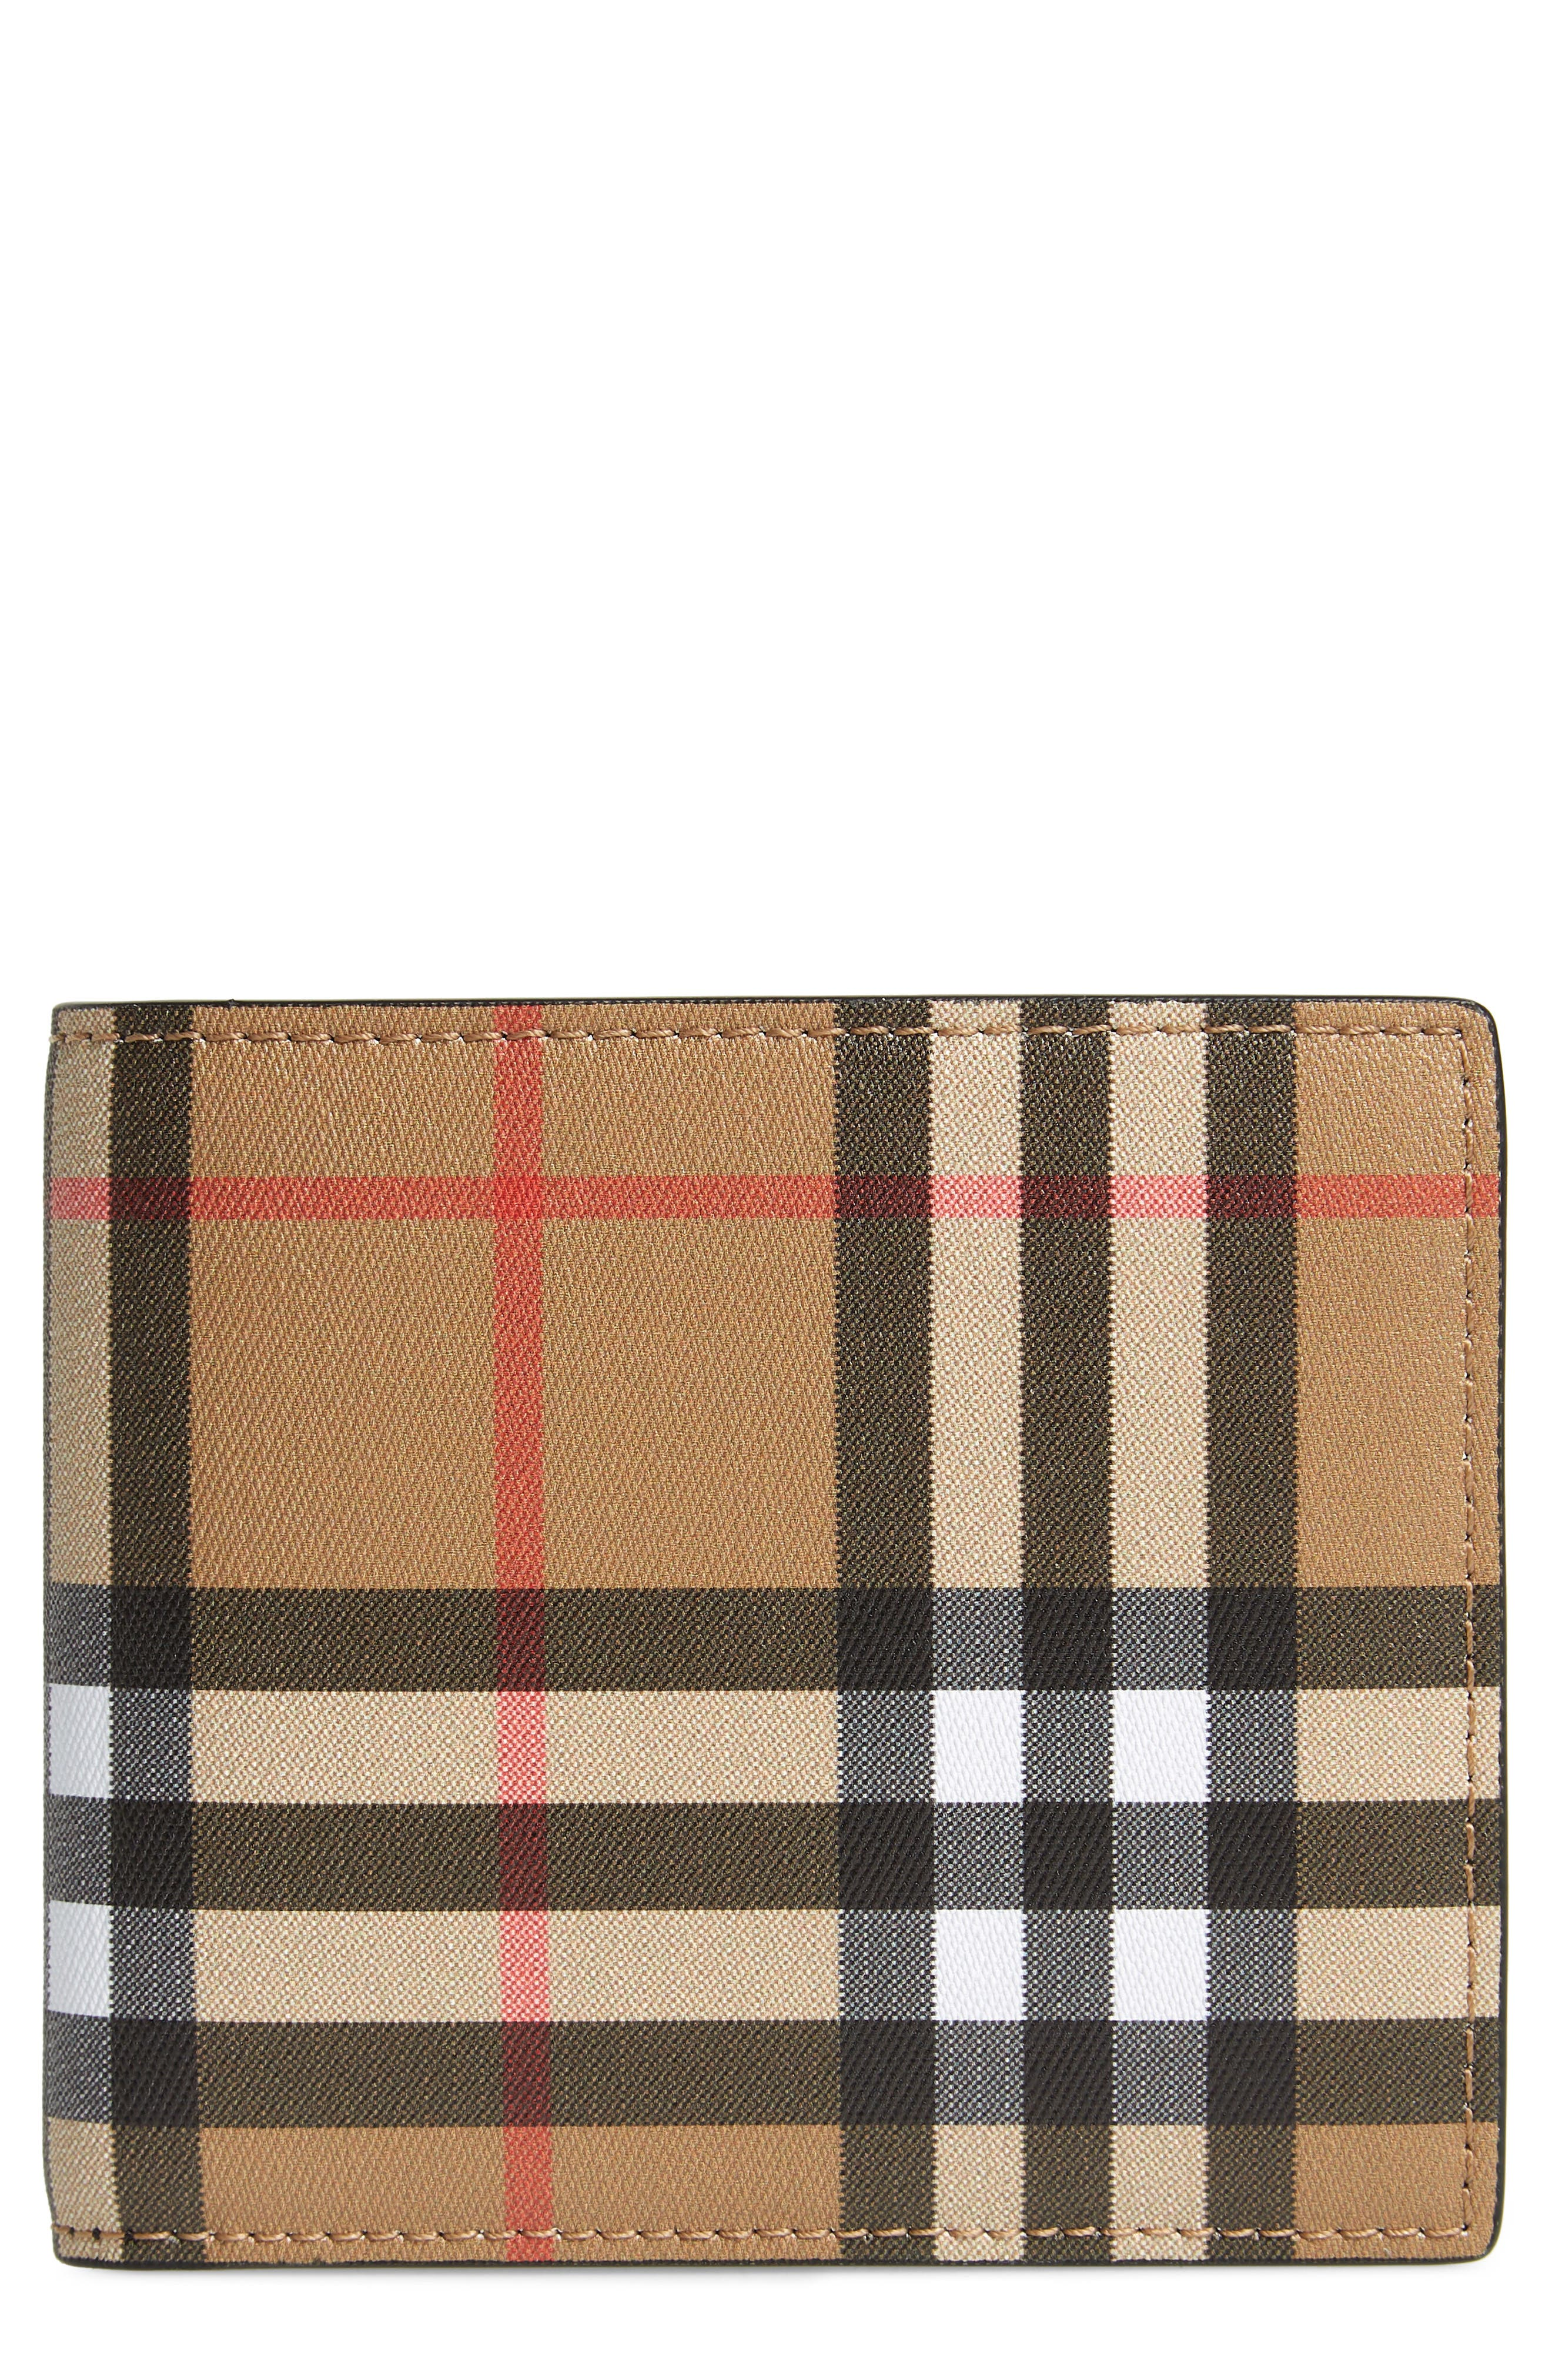 BURBERRY Horseferry Leather Wallet, Main, color, 001